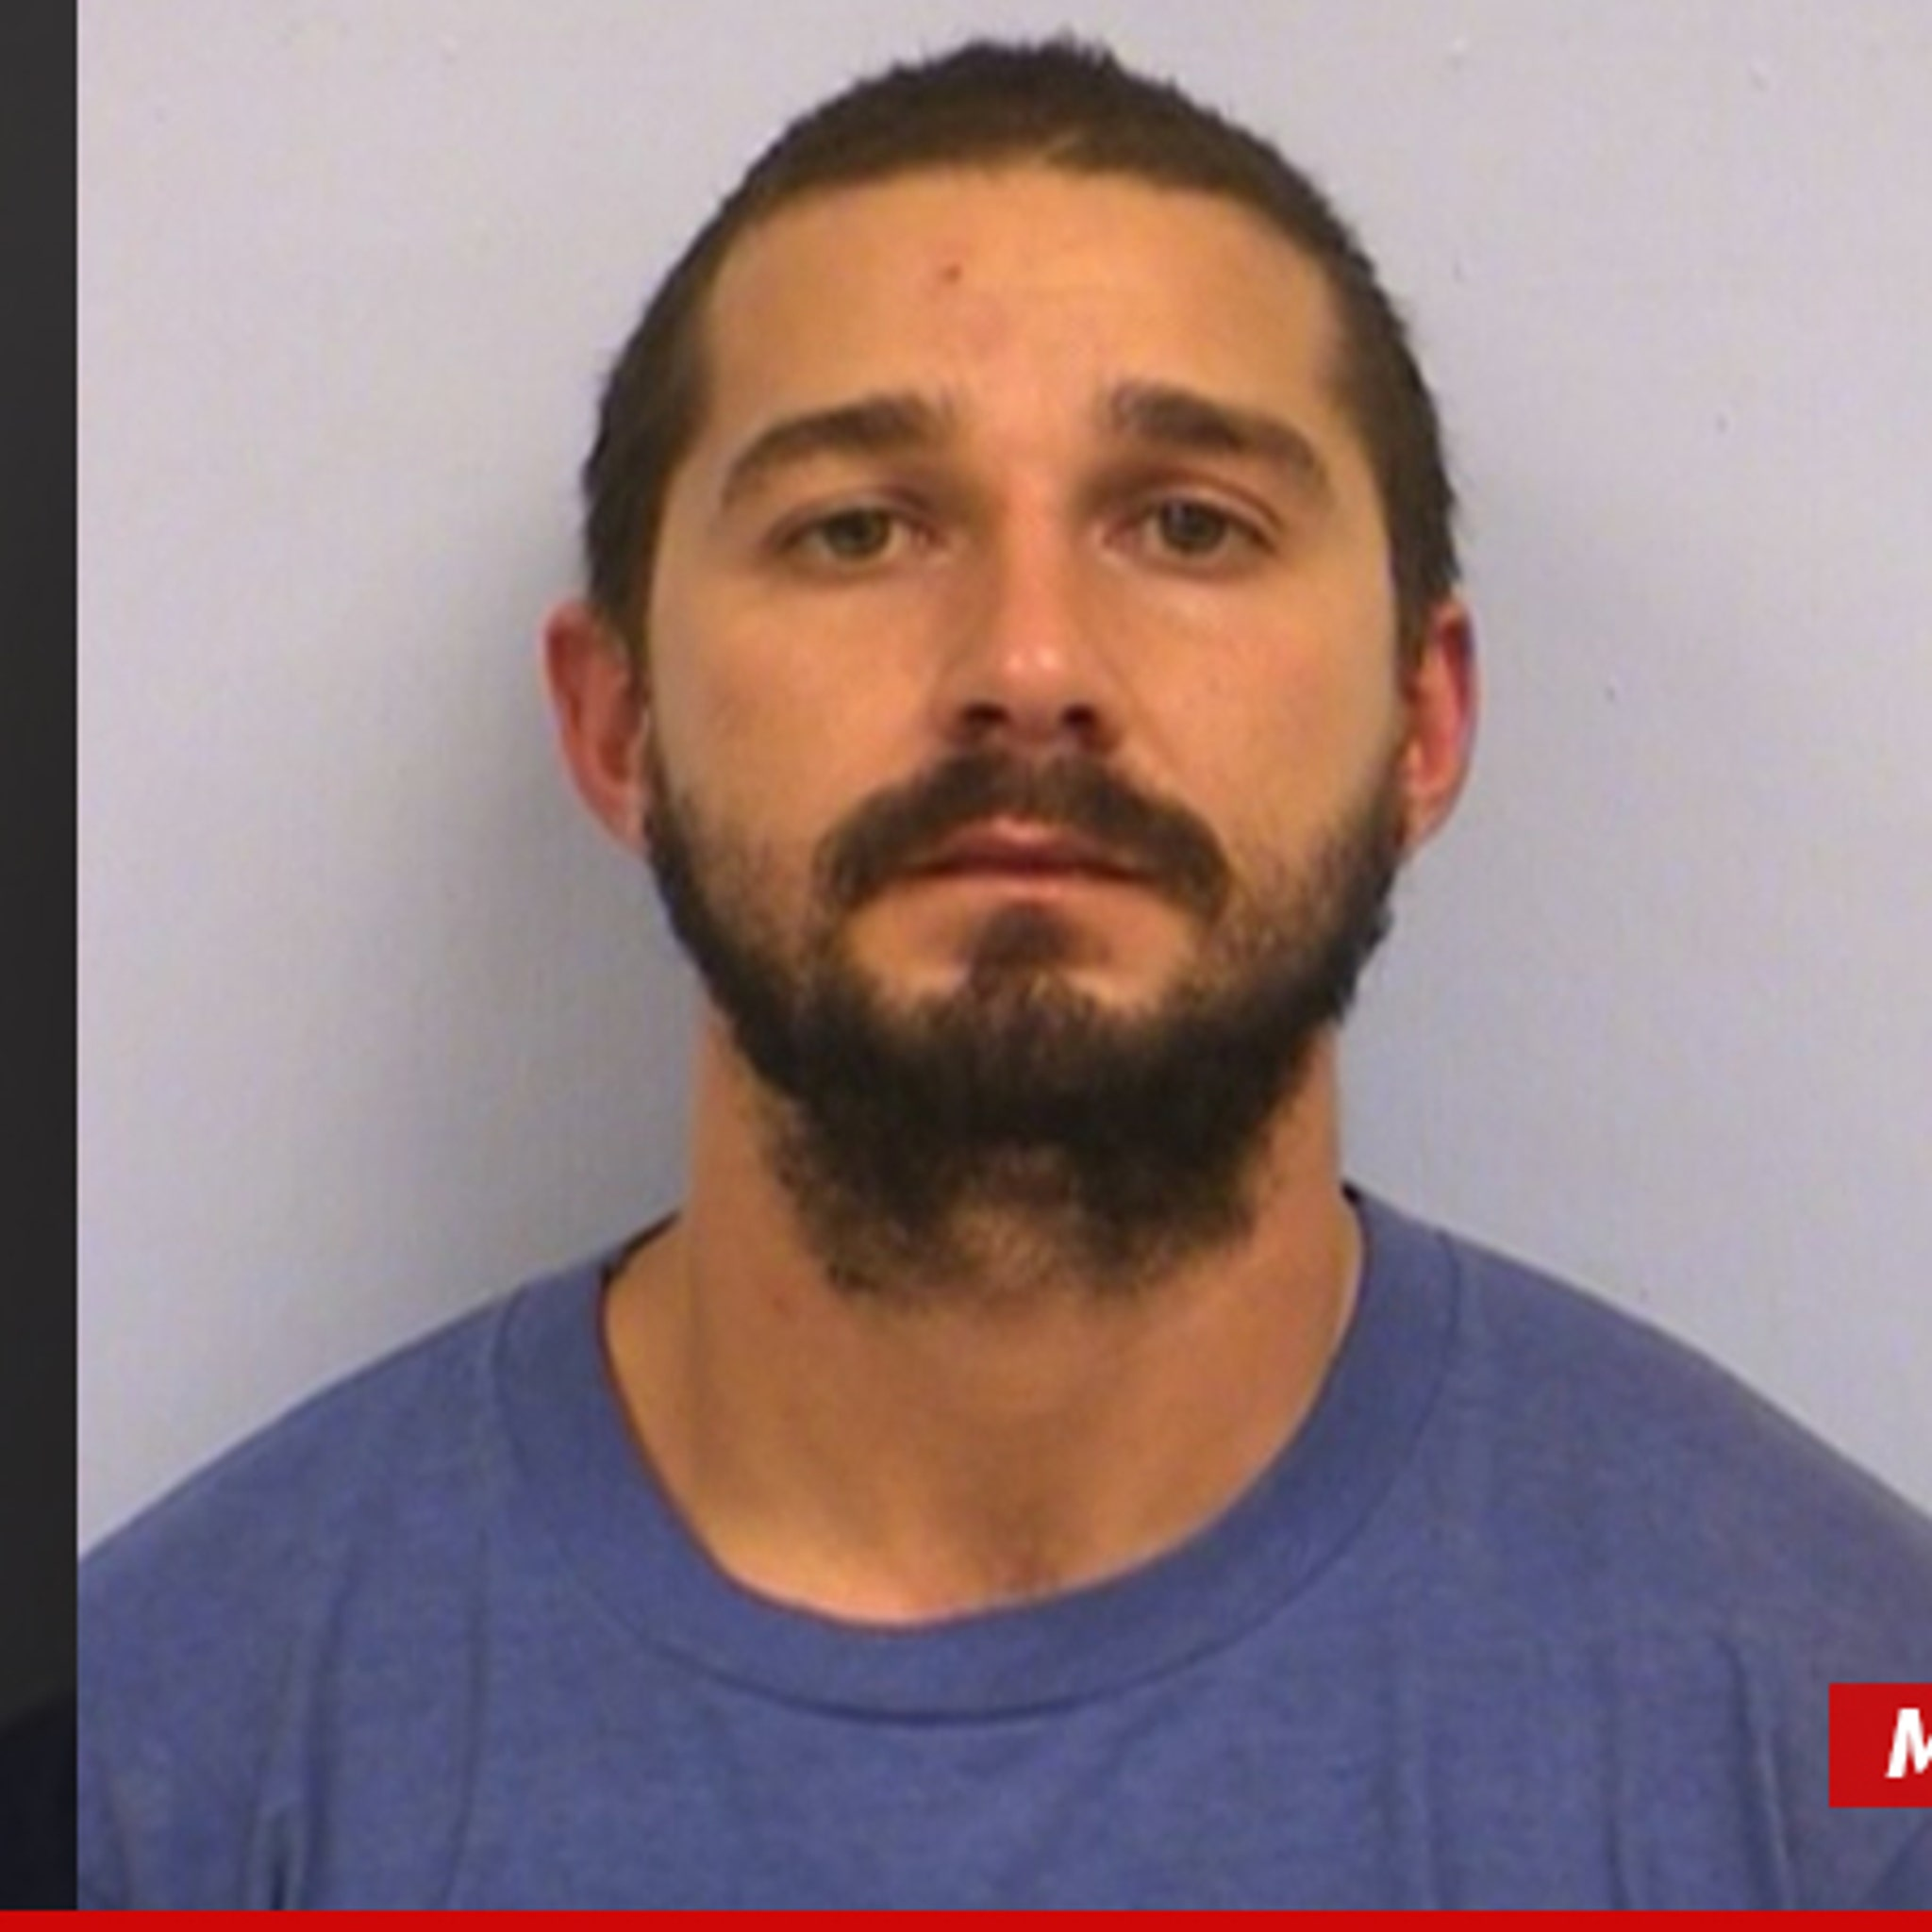 Shia LaBeouf Arrested     Booked for Public Intoxication